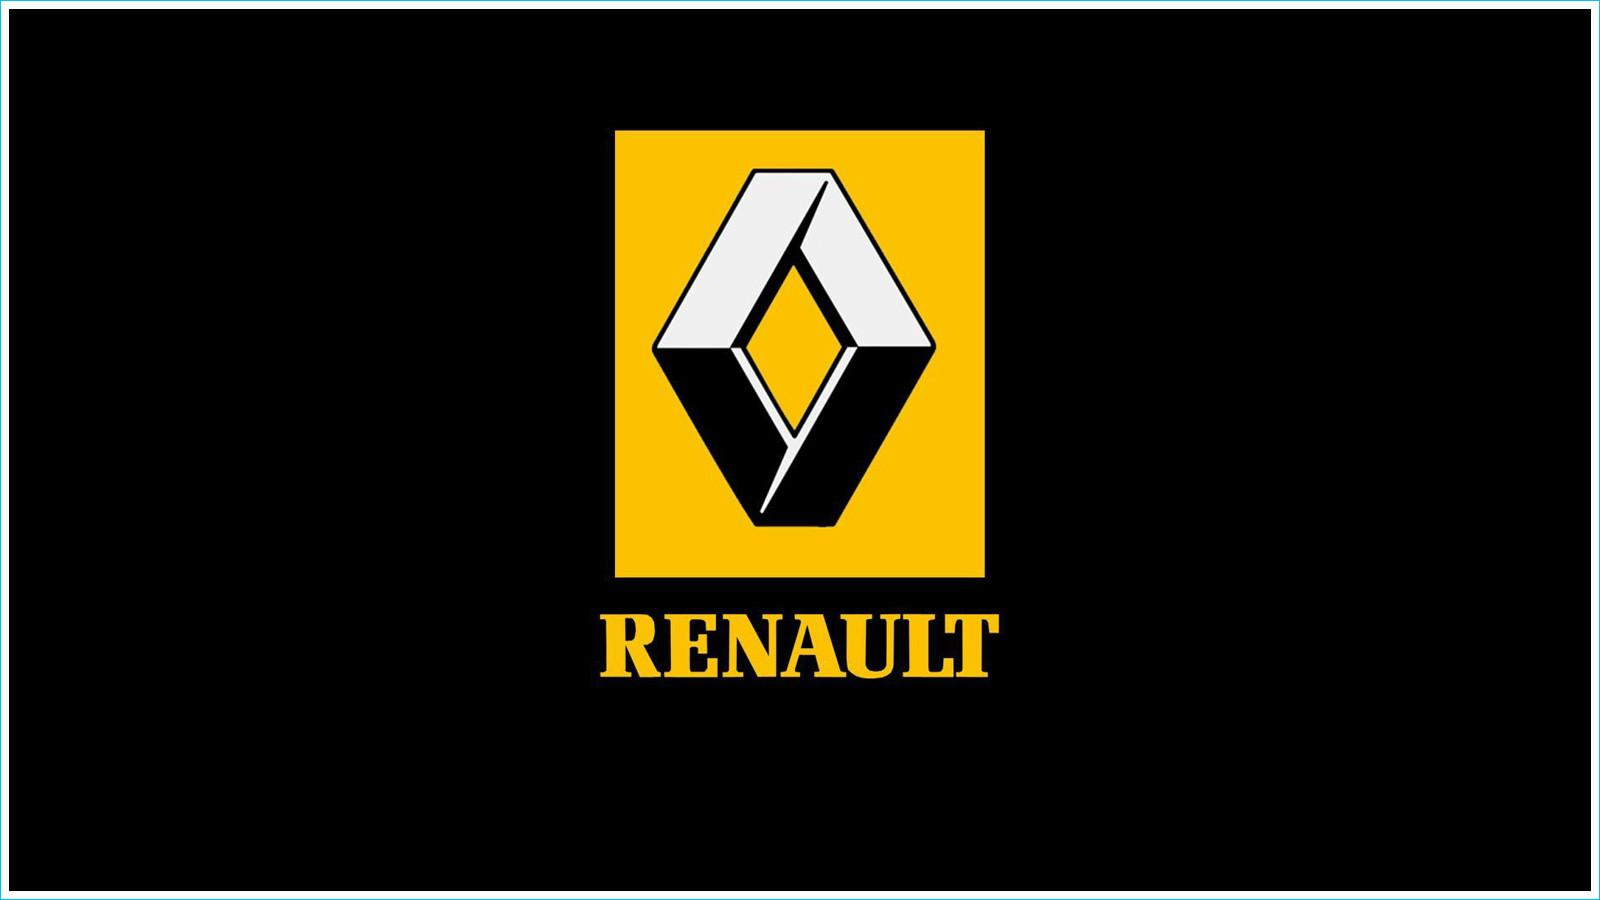 Renault Sport Wallpaper Iphone: Renault Logo Wallpapers